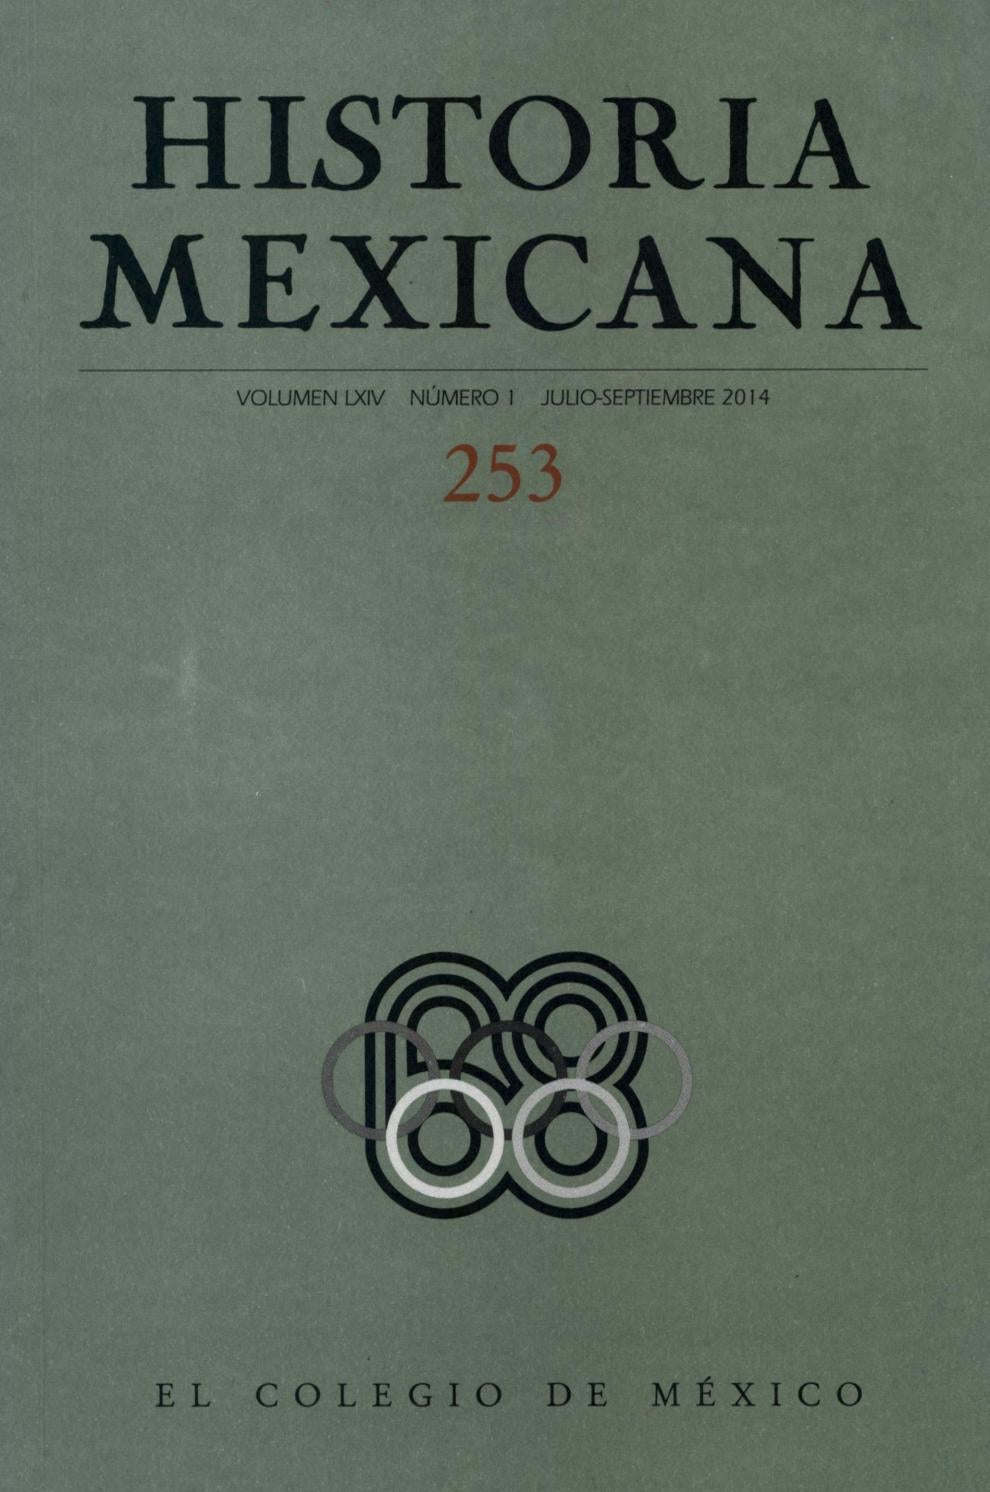 Historia mexicana 253 volumen 64 número 1 by Ce Ocelotl - issuu